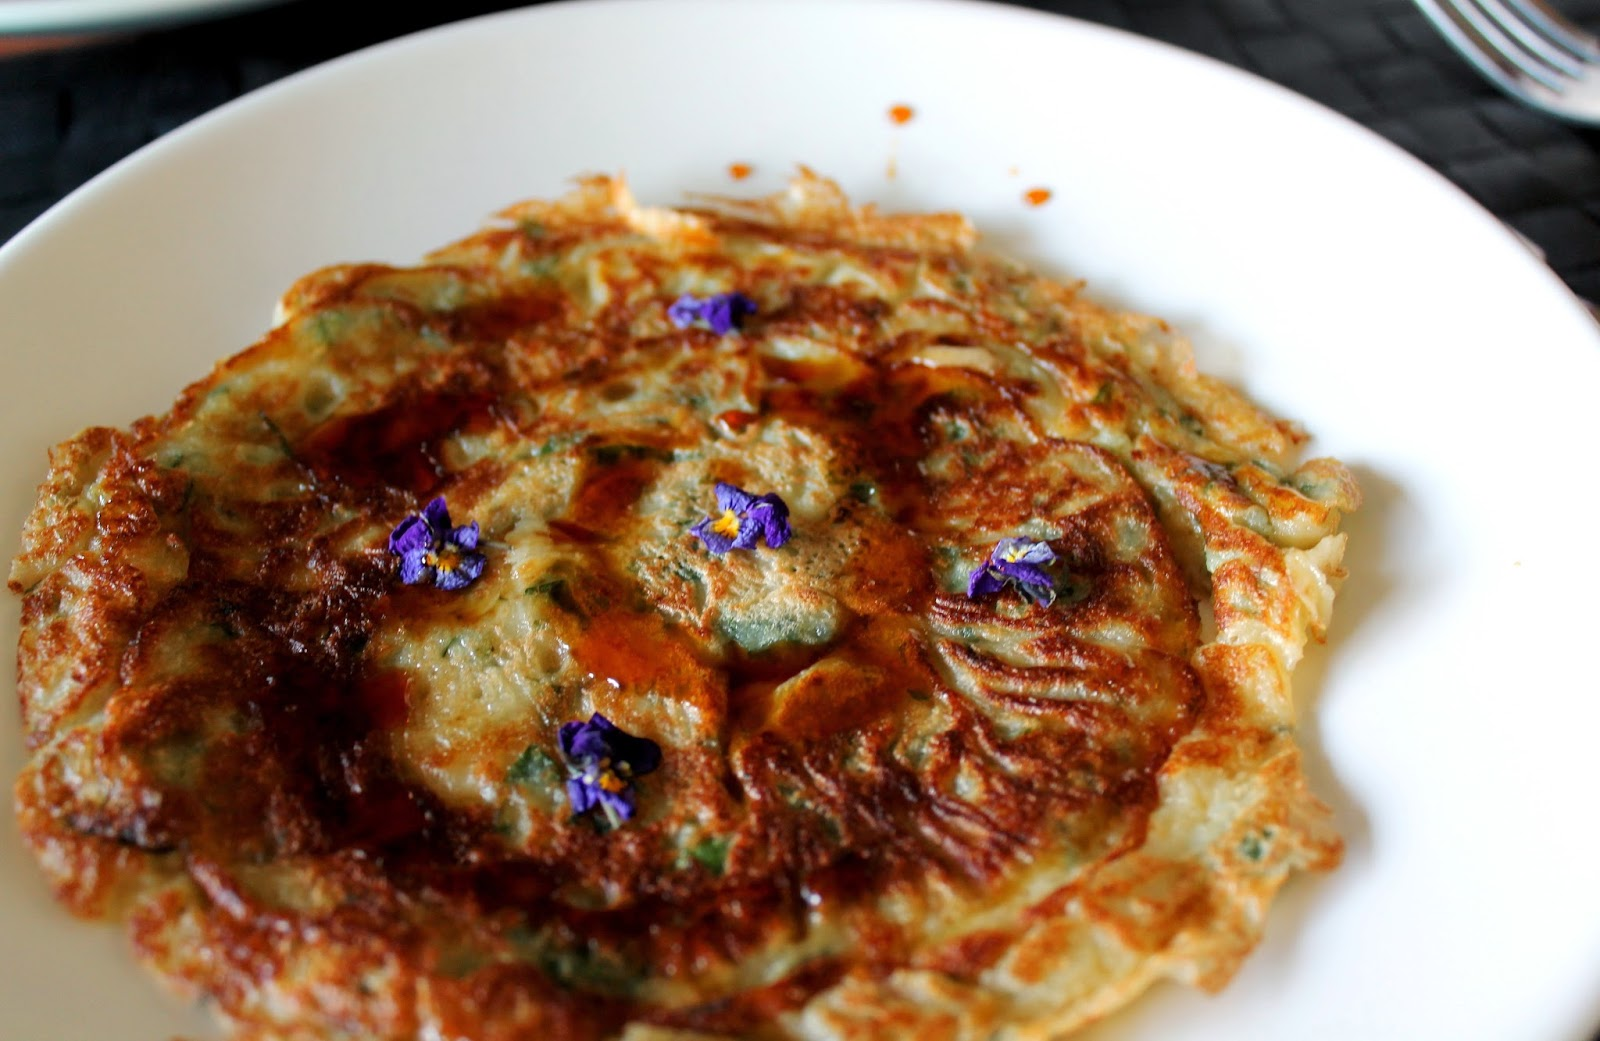 Nettle pancakes with mulberry syrup and violets | Alinan kotona blog